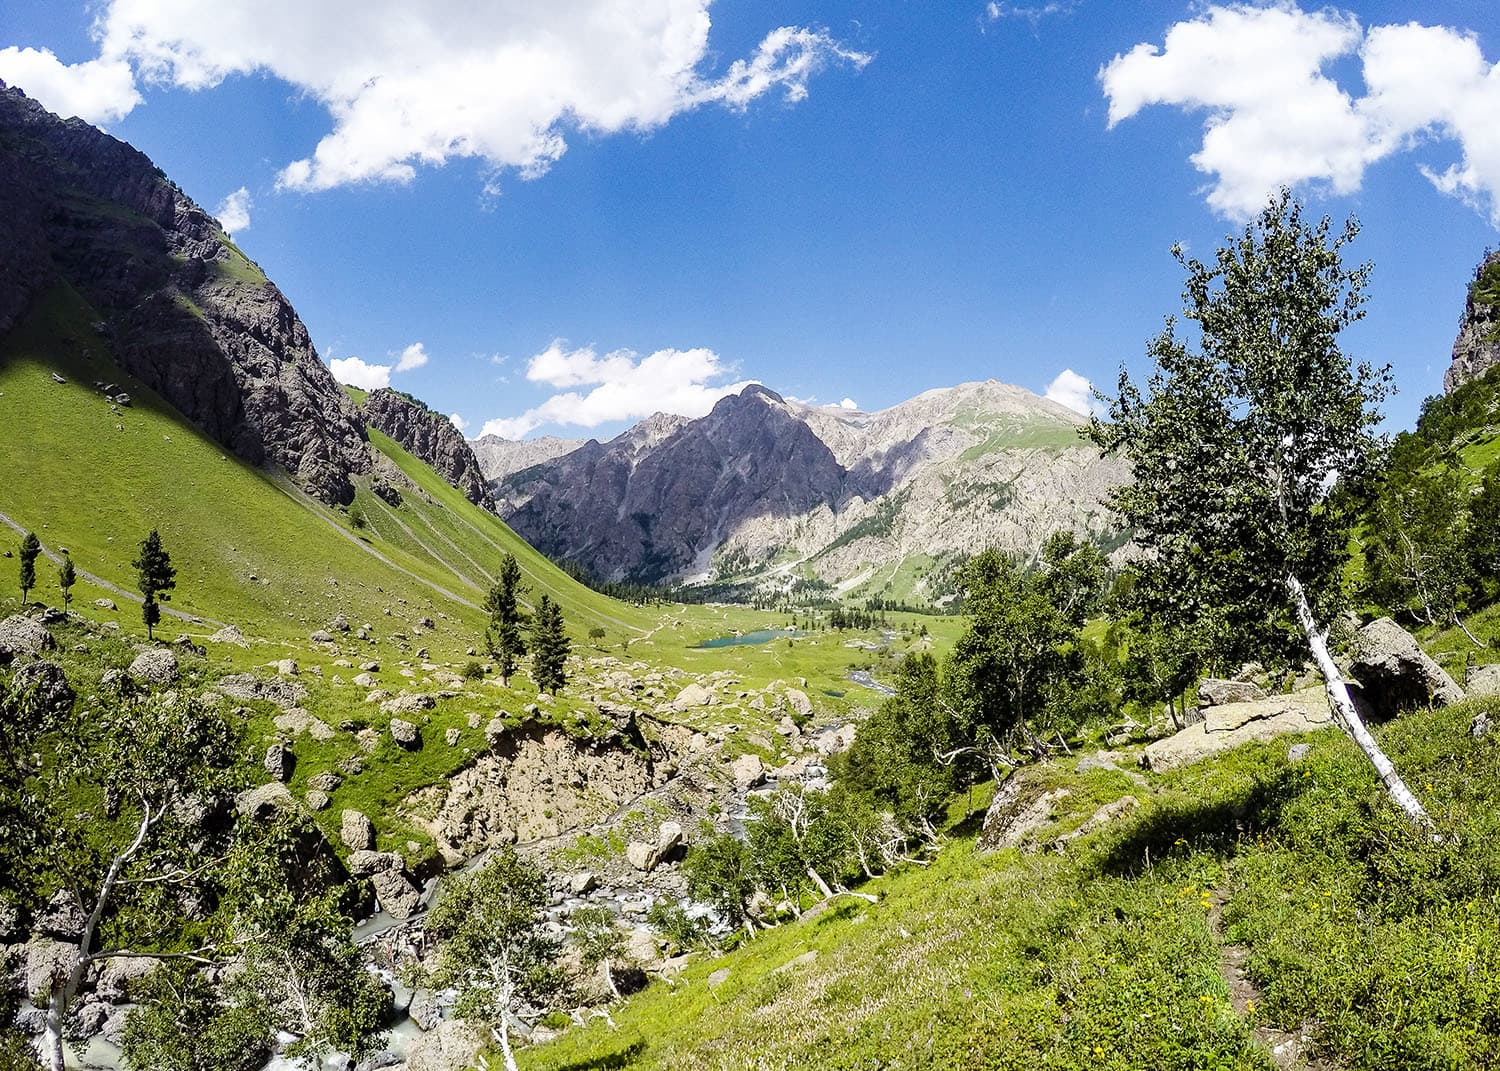 Birchtrees are found all over Minimarg and Domail and are used to make paper.